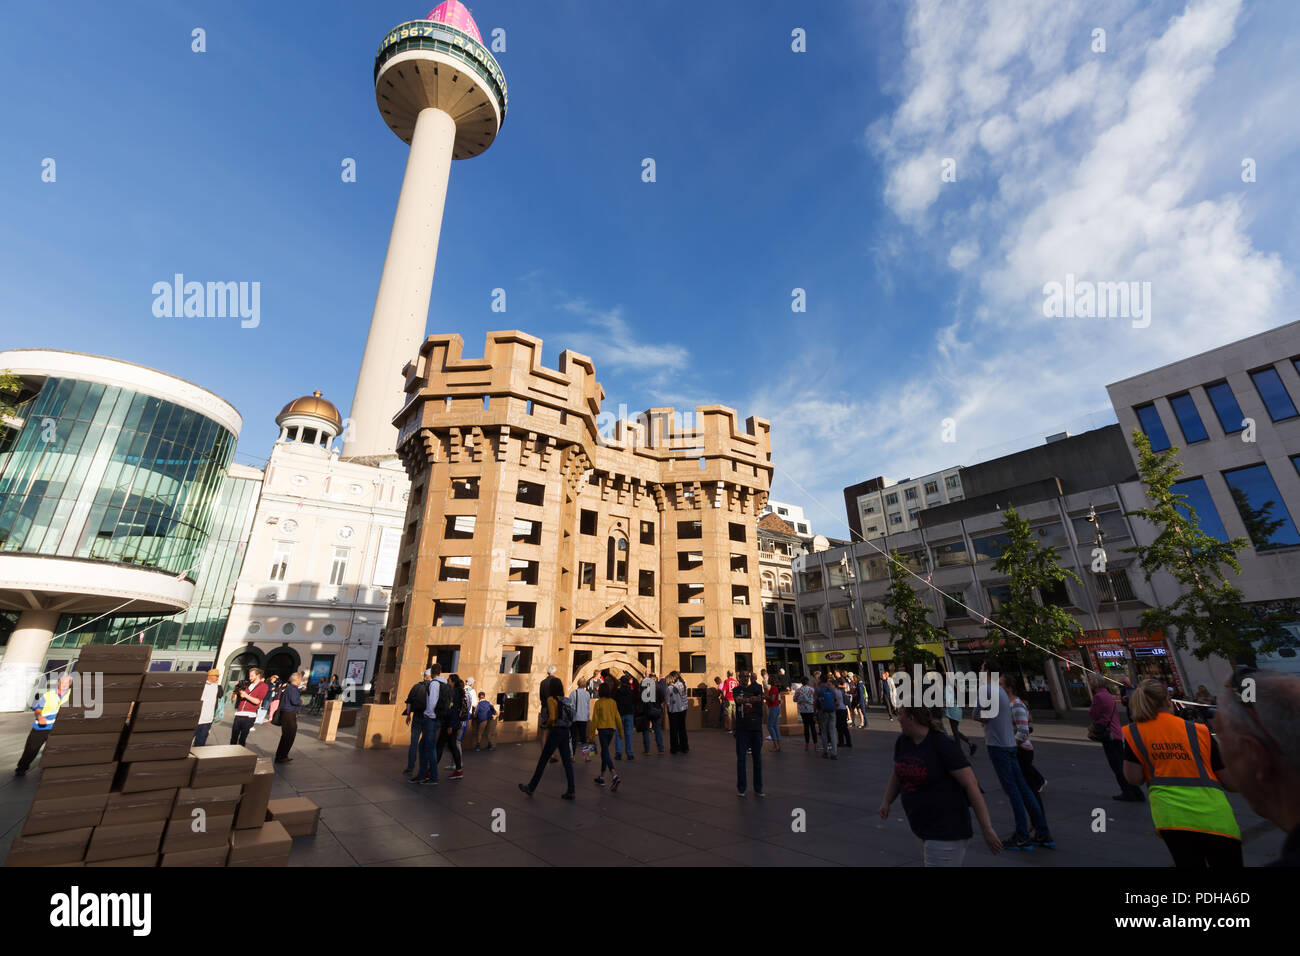 Liverpool, UK. 9th August, 2018. Liverpool's lost castles being built entirely from cardboard boxes. Located in Williamson Square, the castle is built inspired by Liverpool Castle, which stood at the top of modern day Lord Street, and is thought to have been built early in the 13th century. Credit: Ken Biggs/Alamy Live News. Stock Photo